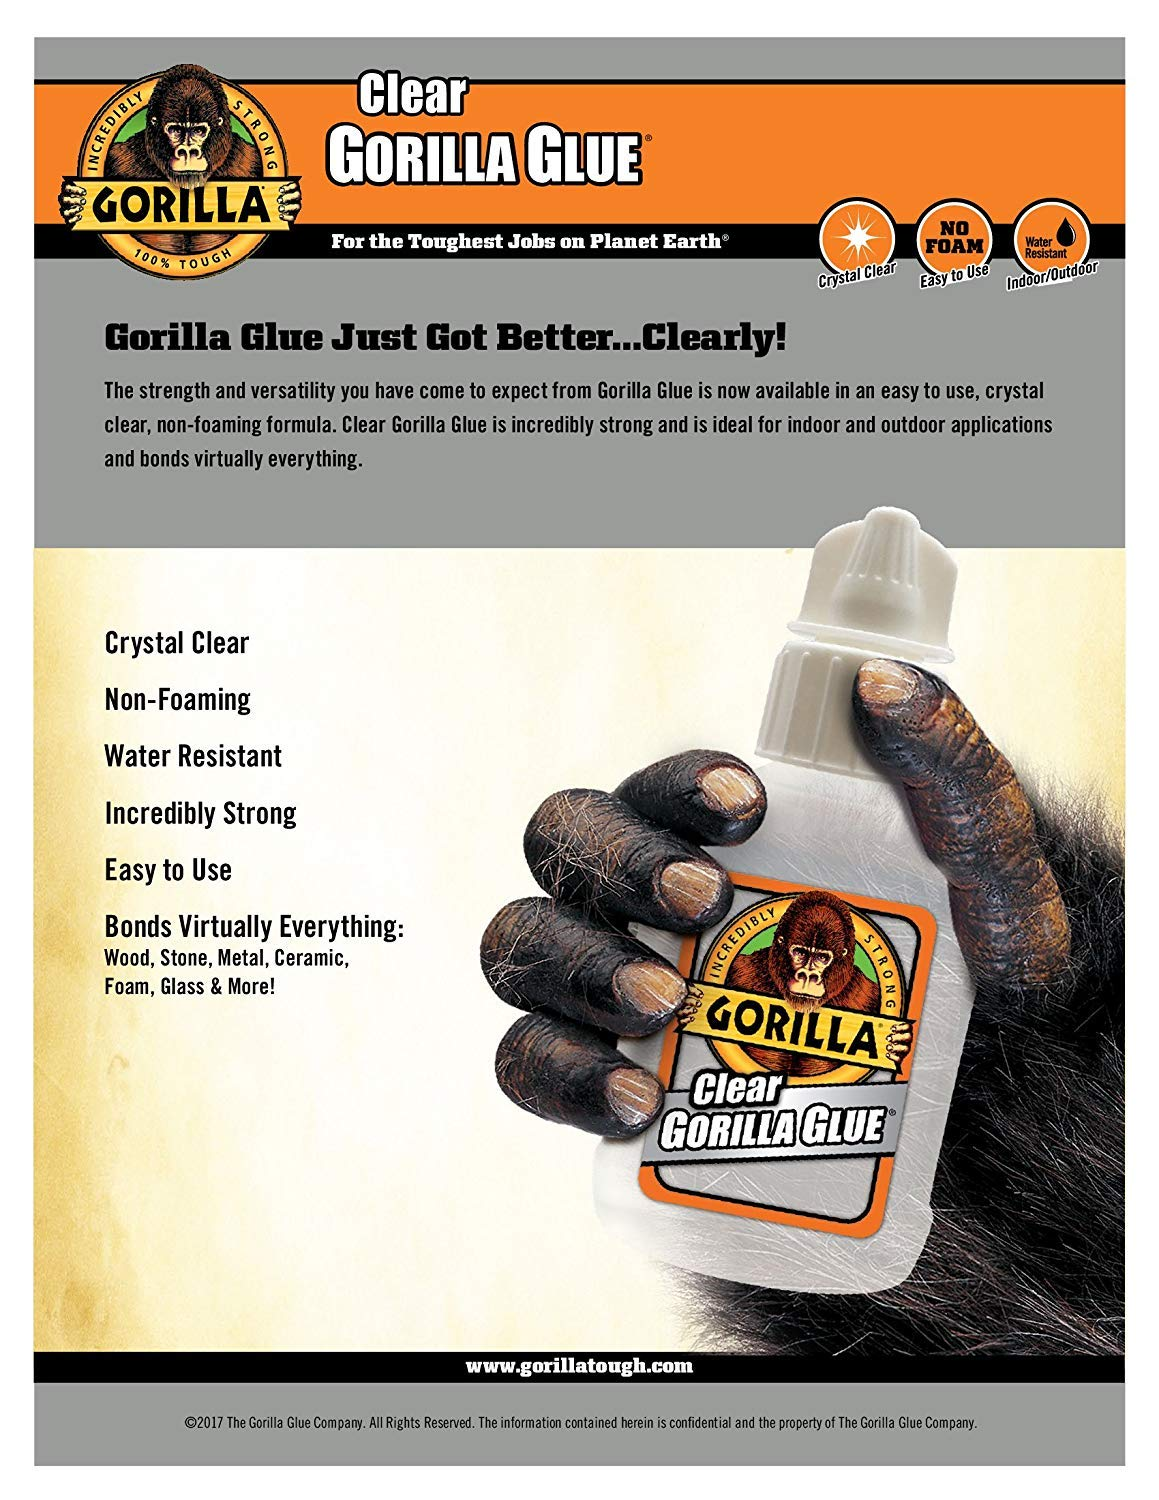 Gorilla Clear Glue, 5.75 ounce Bottle, Clear (Pack of 1) (2-(Pack)) by Gorilla (Image #3)